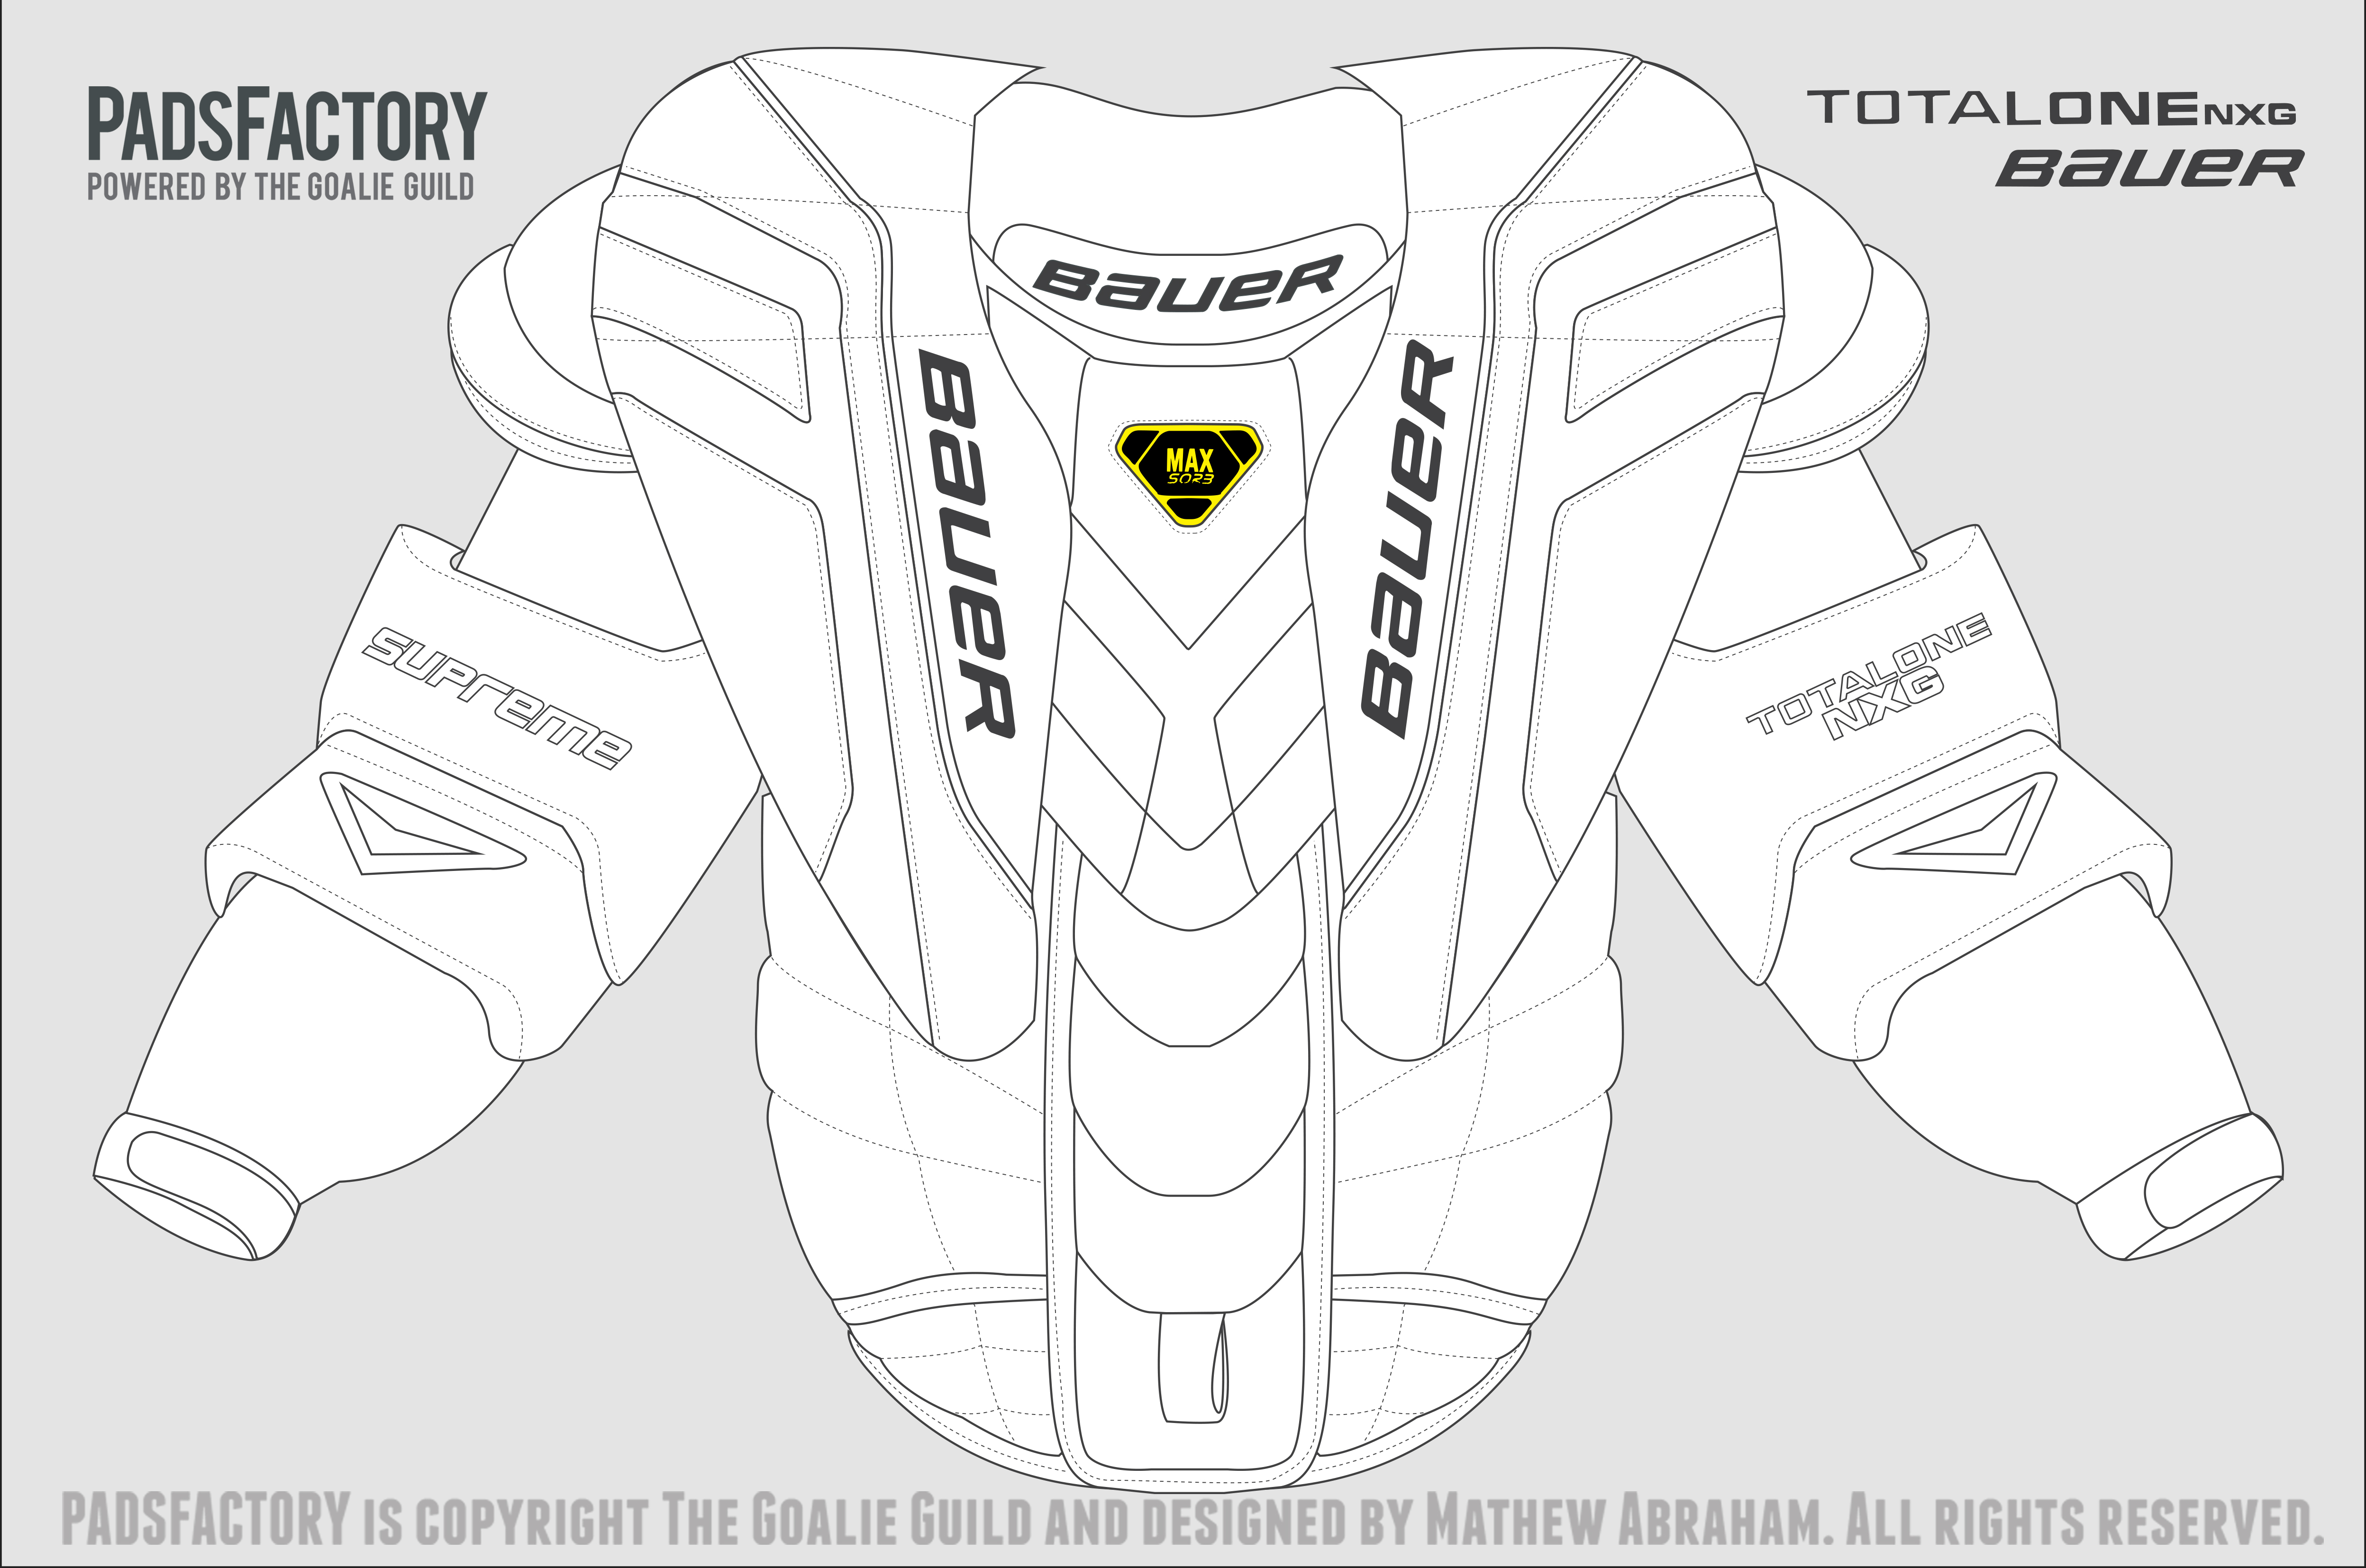 Chest arm pad templates the goalie archive for Bauer goalie mask template